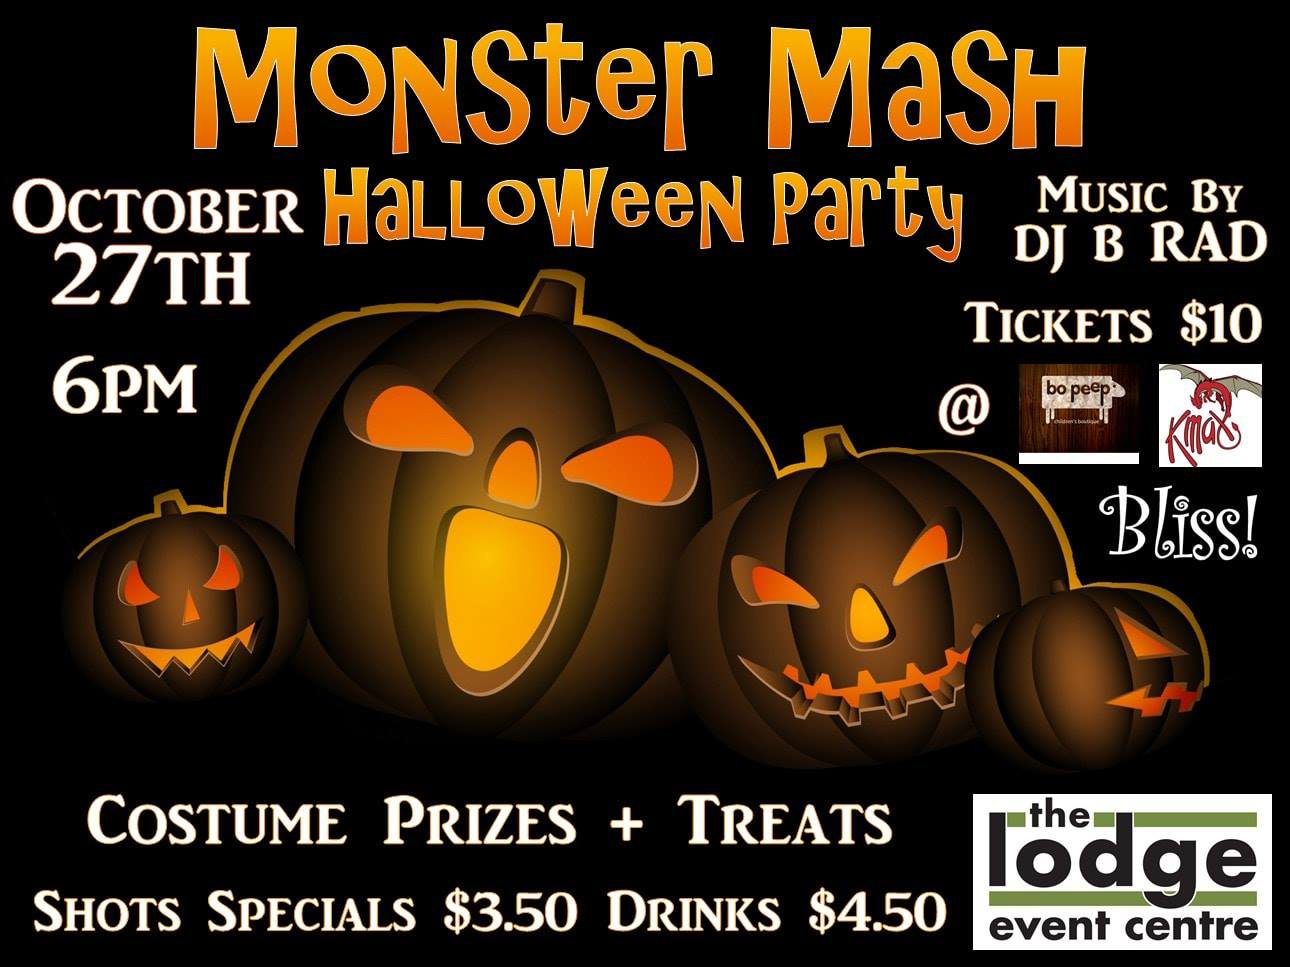 monster mash halloween party @ the lodge - my cariboo now